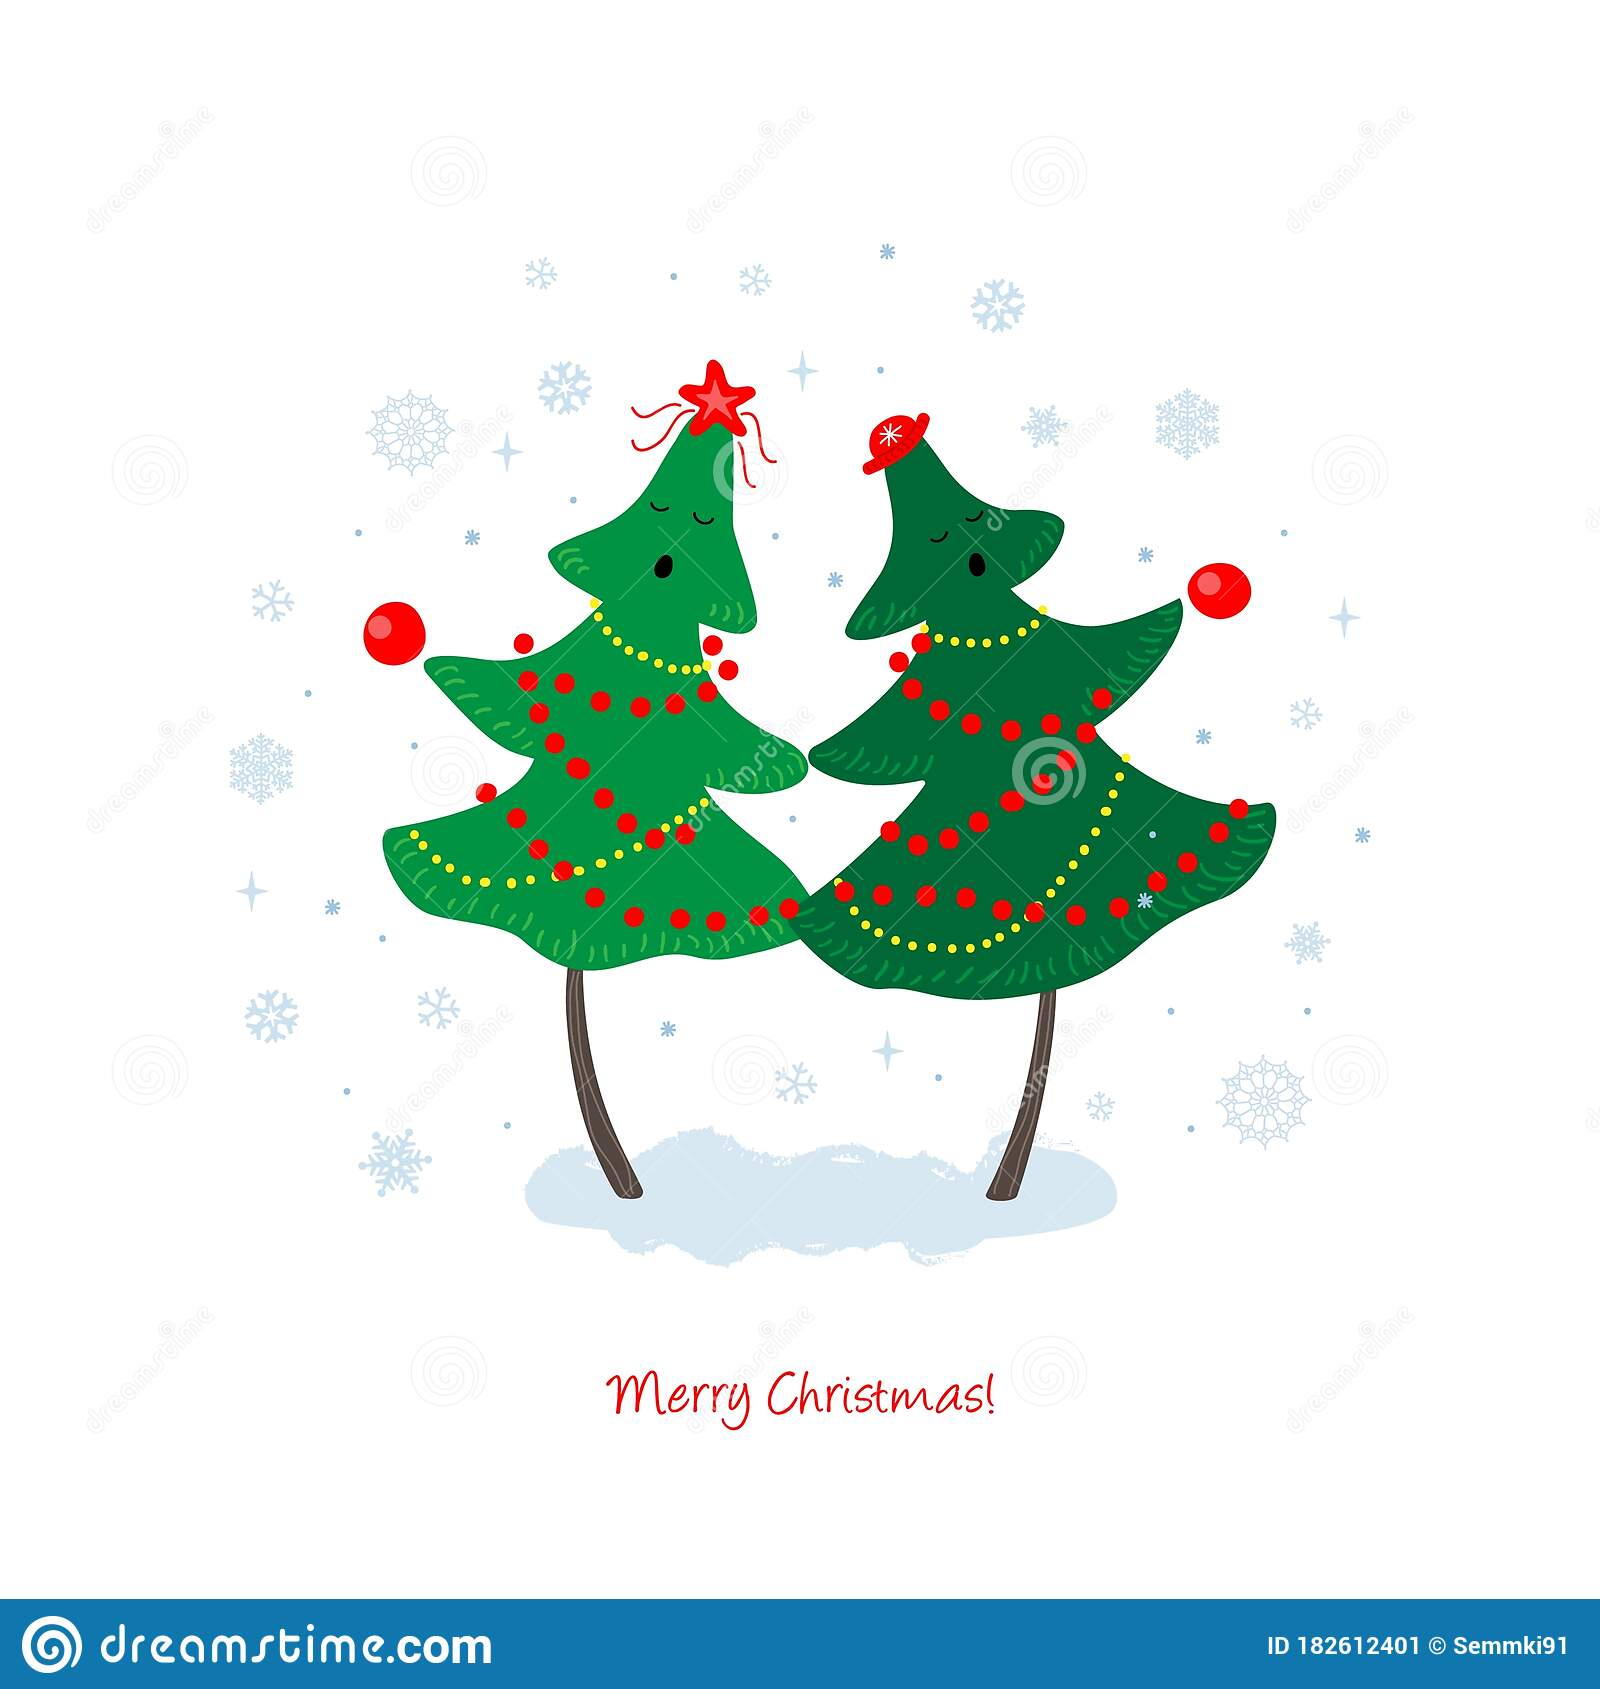 Christmas And New Year Vector Greeting Card With Merry Christmas Trees Sing Songs Stock Illustration Illustration Of Cute Party 182612401